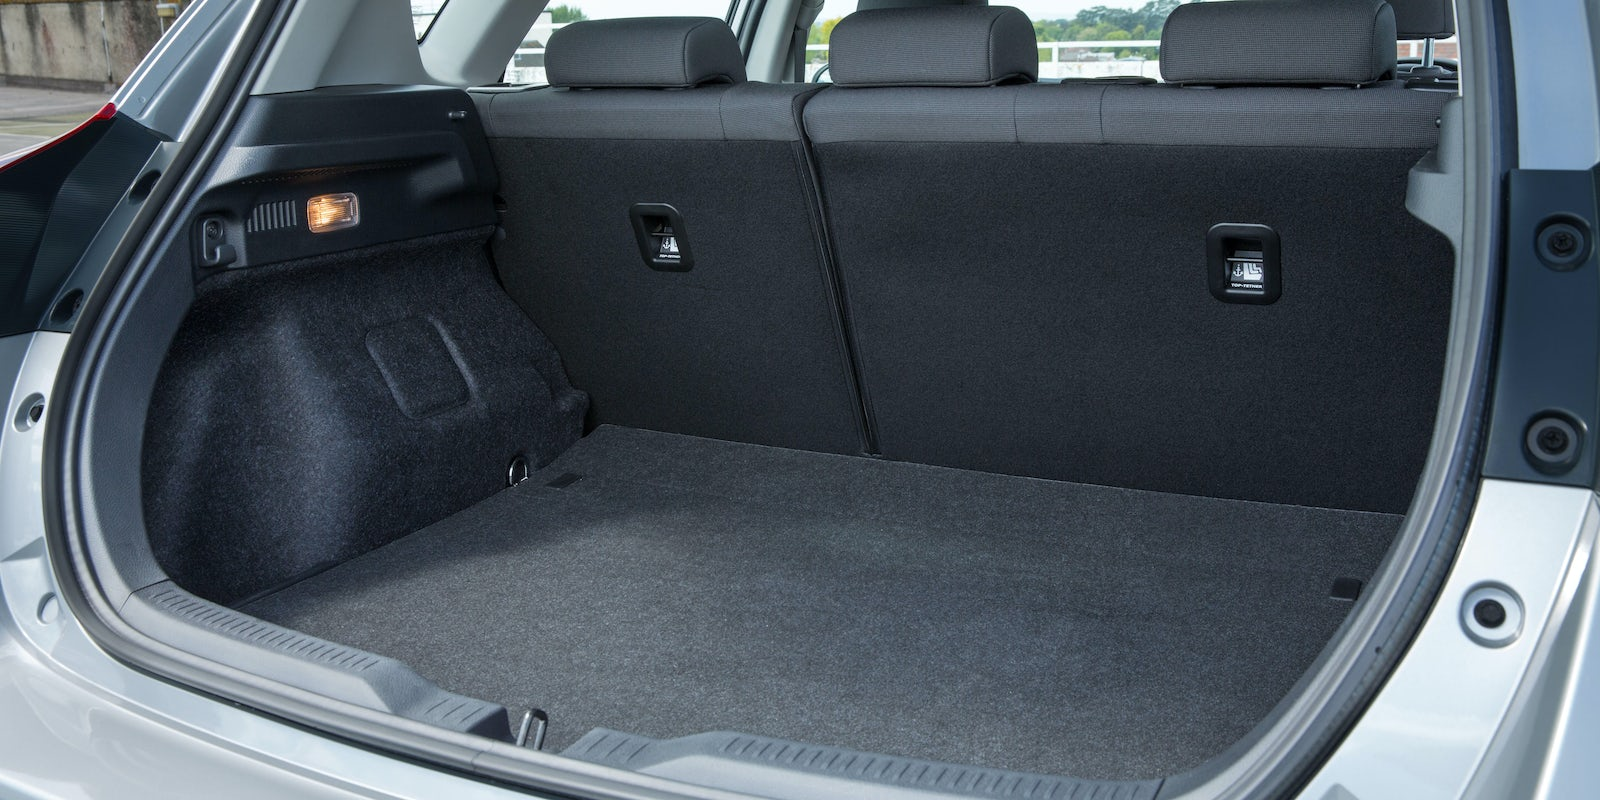 Toyota Auris Boot Space Amp Dimensions Carwow